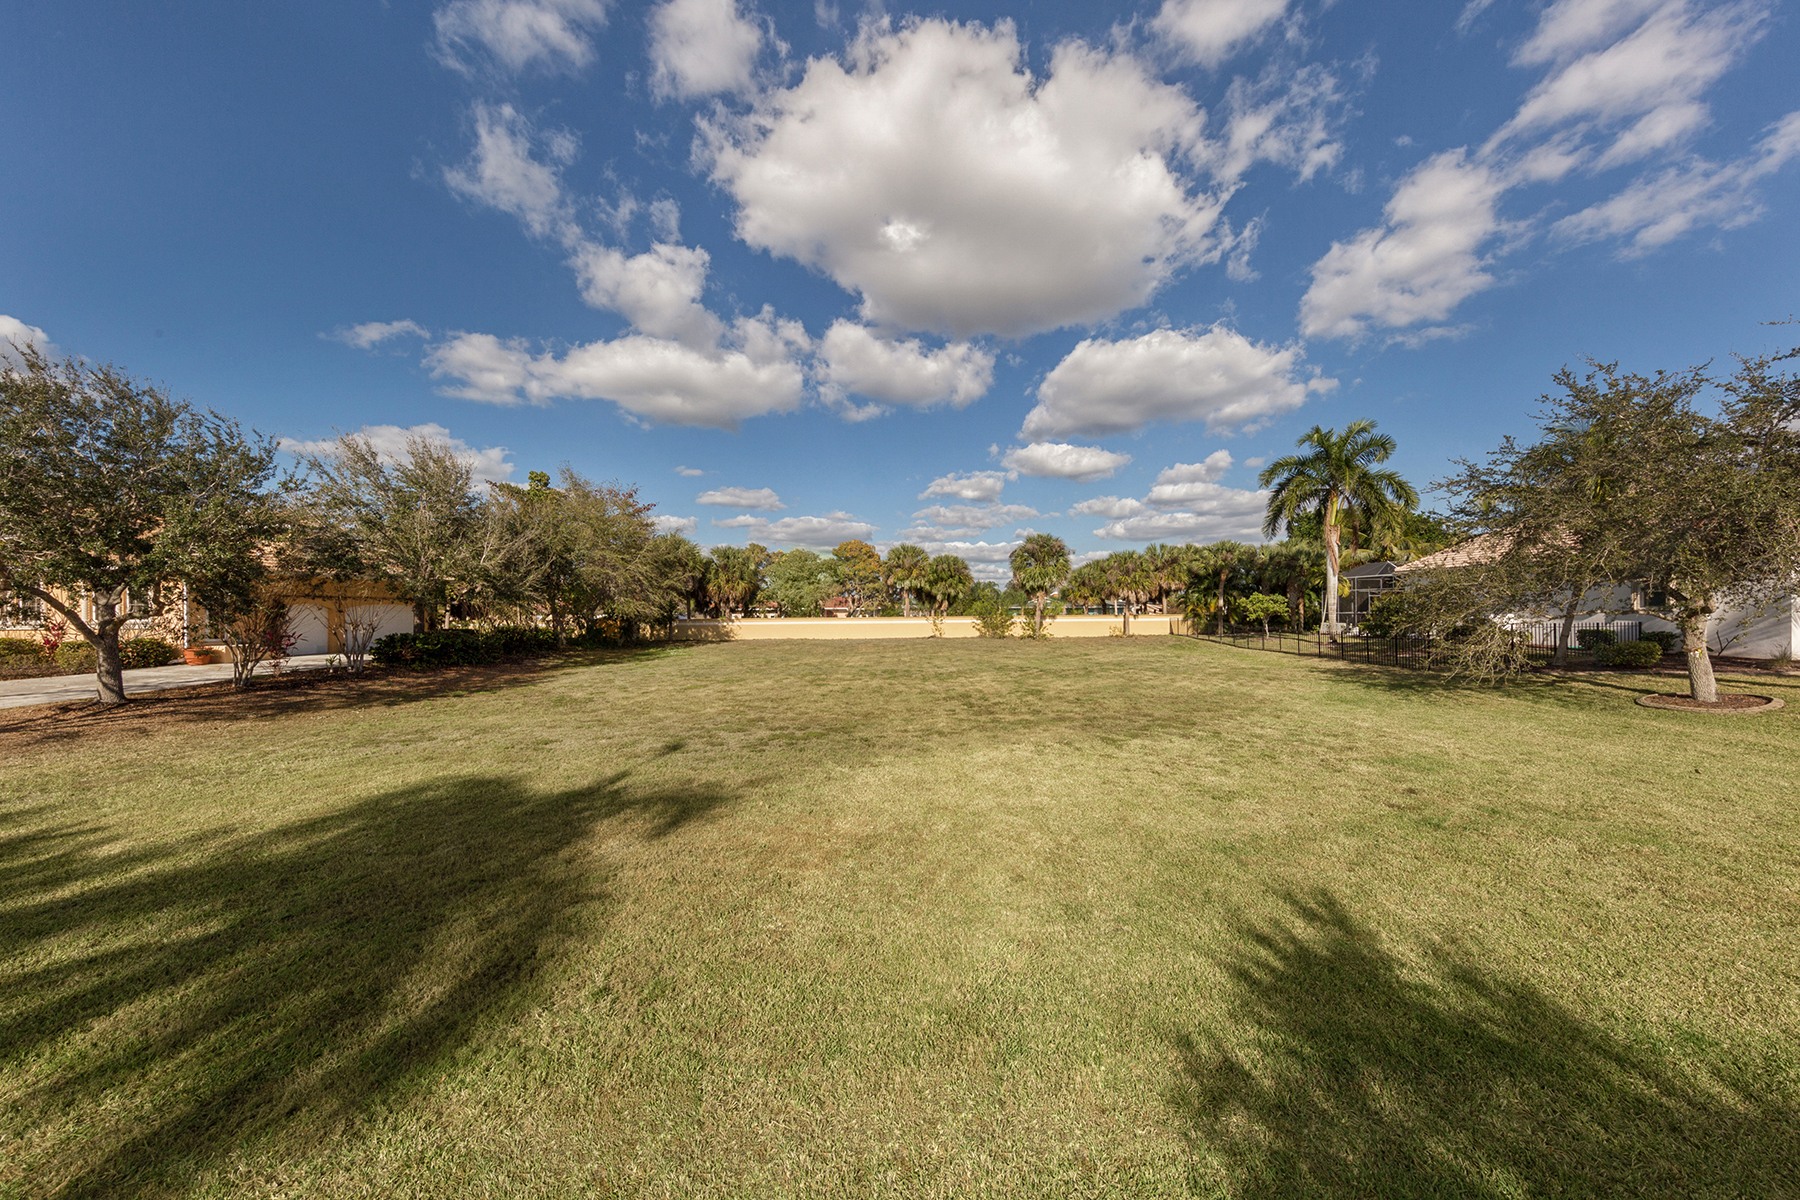 Terreno por un Venta en GRASSY POINT ESTATES 21380 Harborside Blvd 62 Port Charlotte, Florida 33952 Estados Unidos